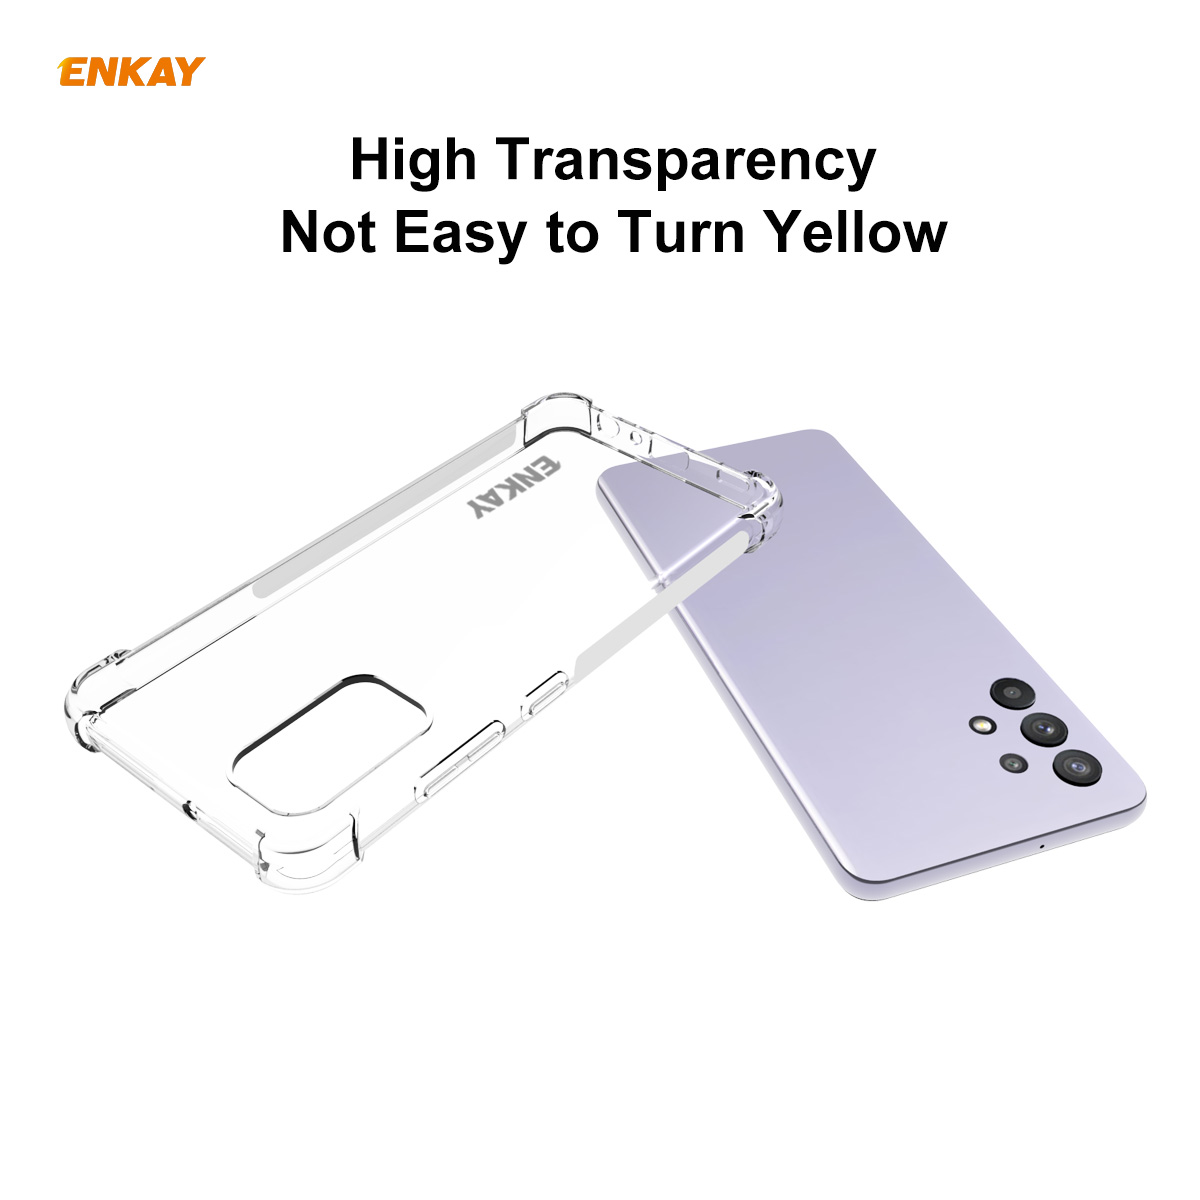 ENKAY Hat-Prince ENK-PC108 Phone Case for Samsung Galaxy A32 4G/Samsung Galaxy A02 - Transparent Samsung Galaxy A32 4G